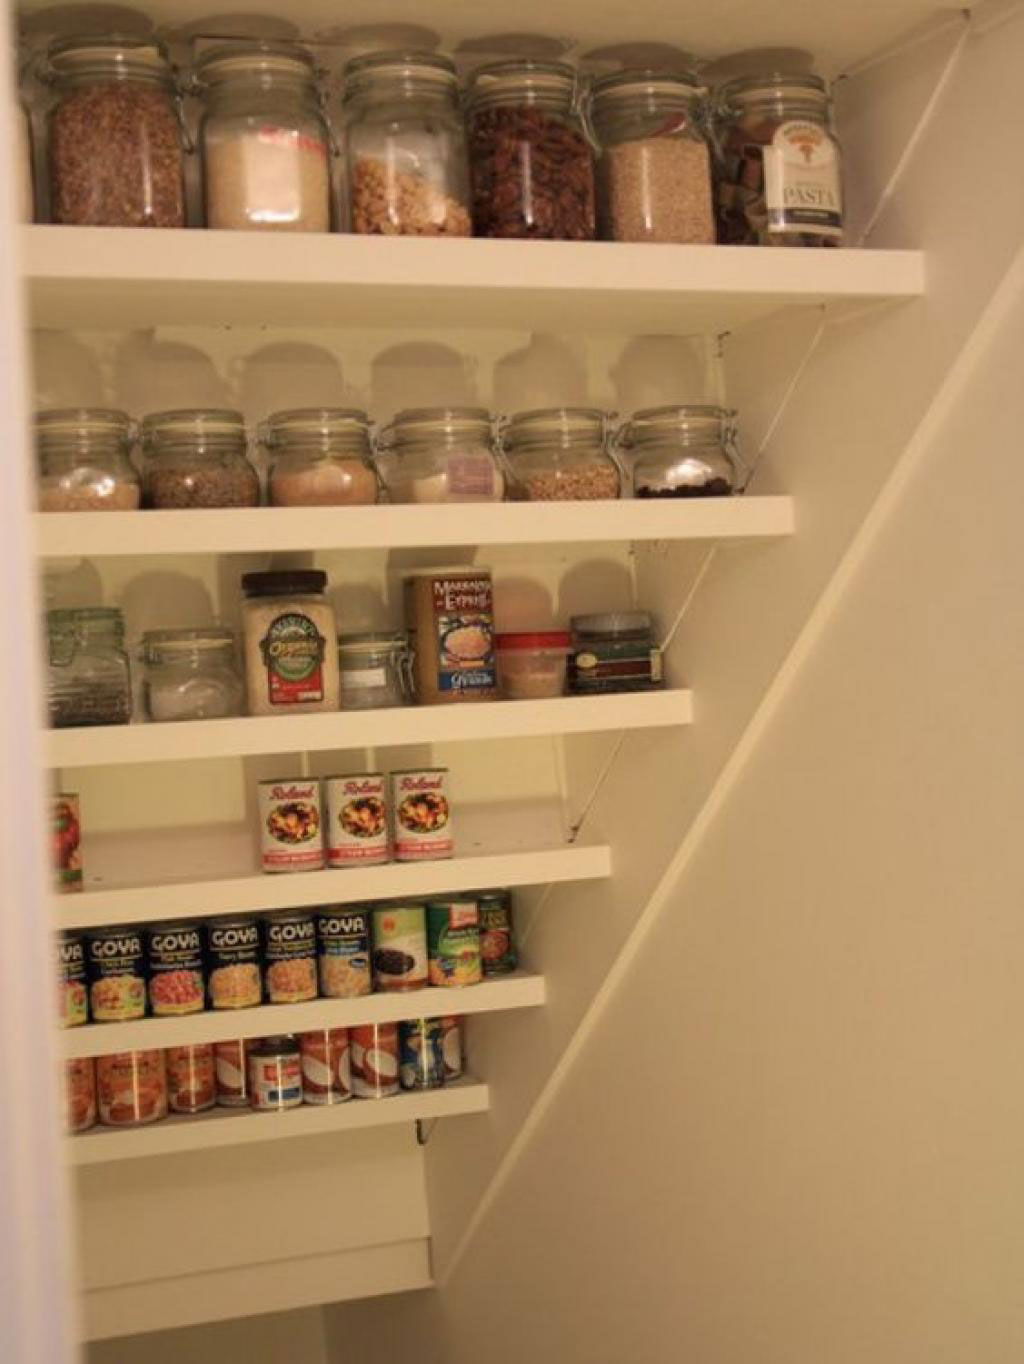 Closet Pantry Under The Stairs Storage How To Make The Most Out Of Every Inch